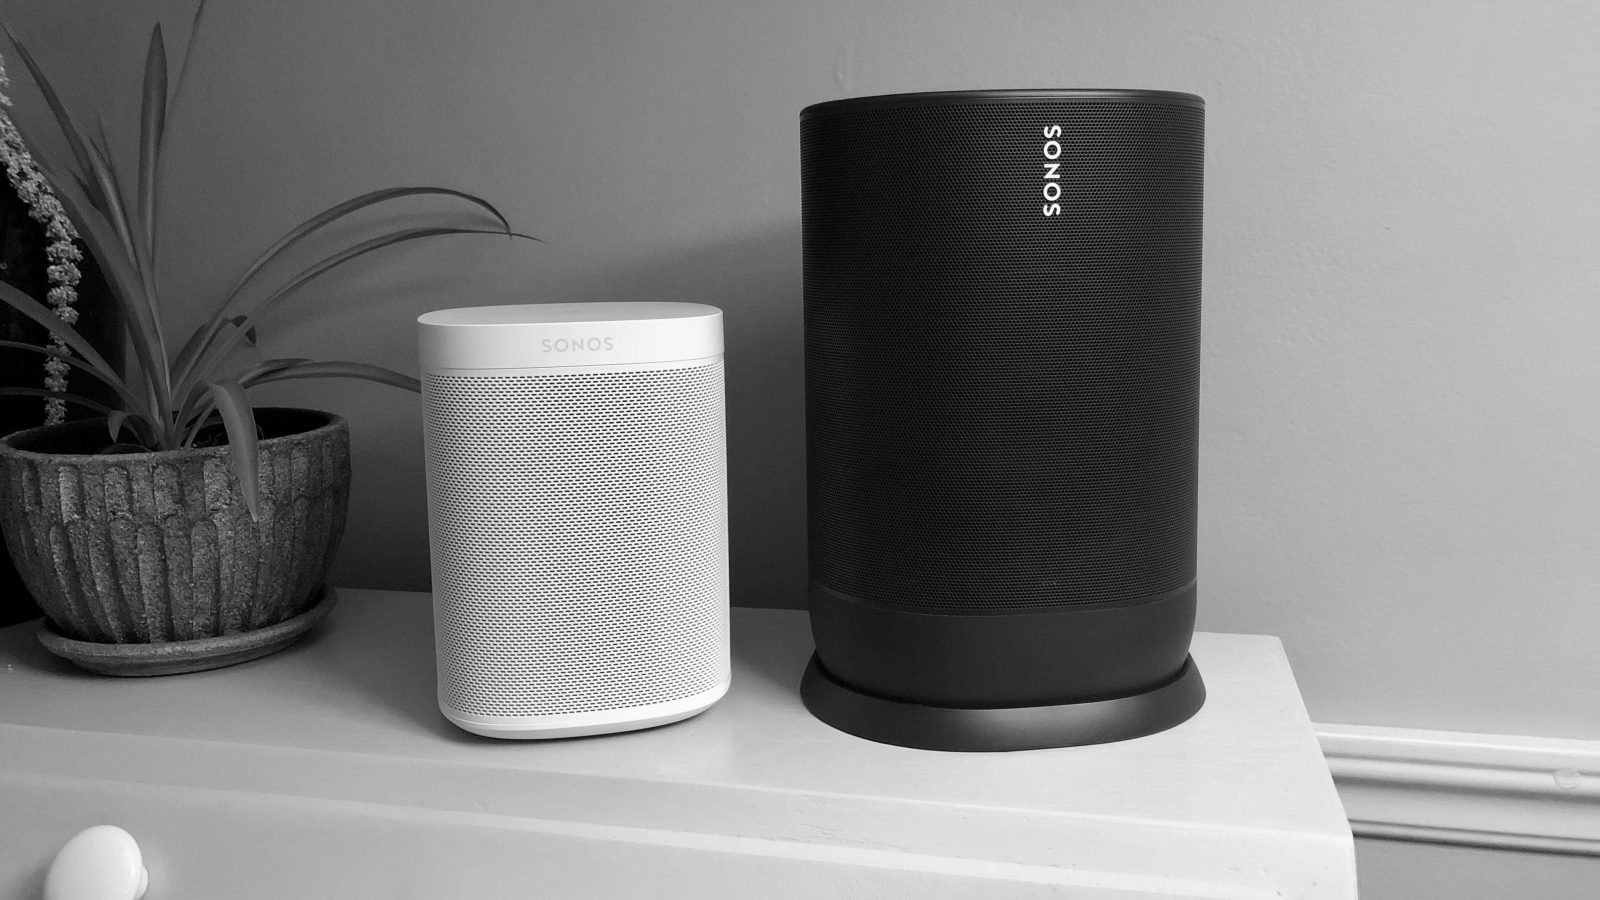 Sonos testing clever Wi-Fi analysis tech to improve smart speaker sound quality